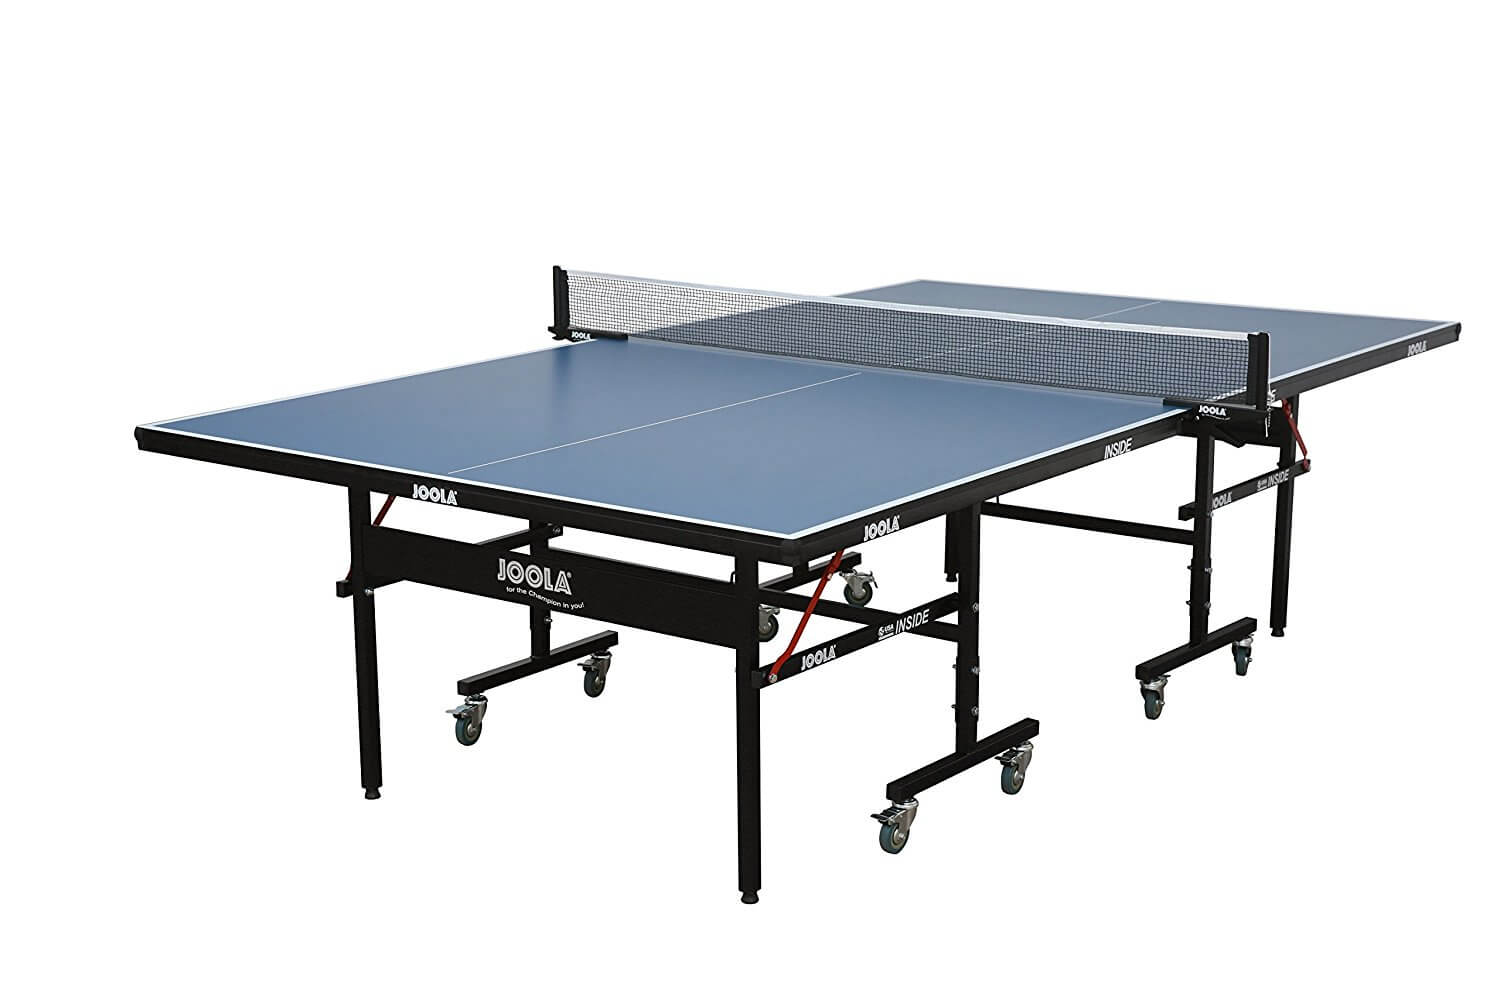 Best Ping Pong Table Under 500 Best Ping Pong Tables